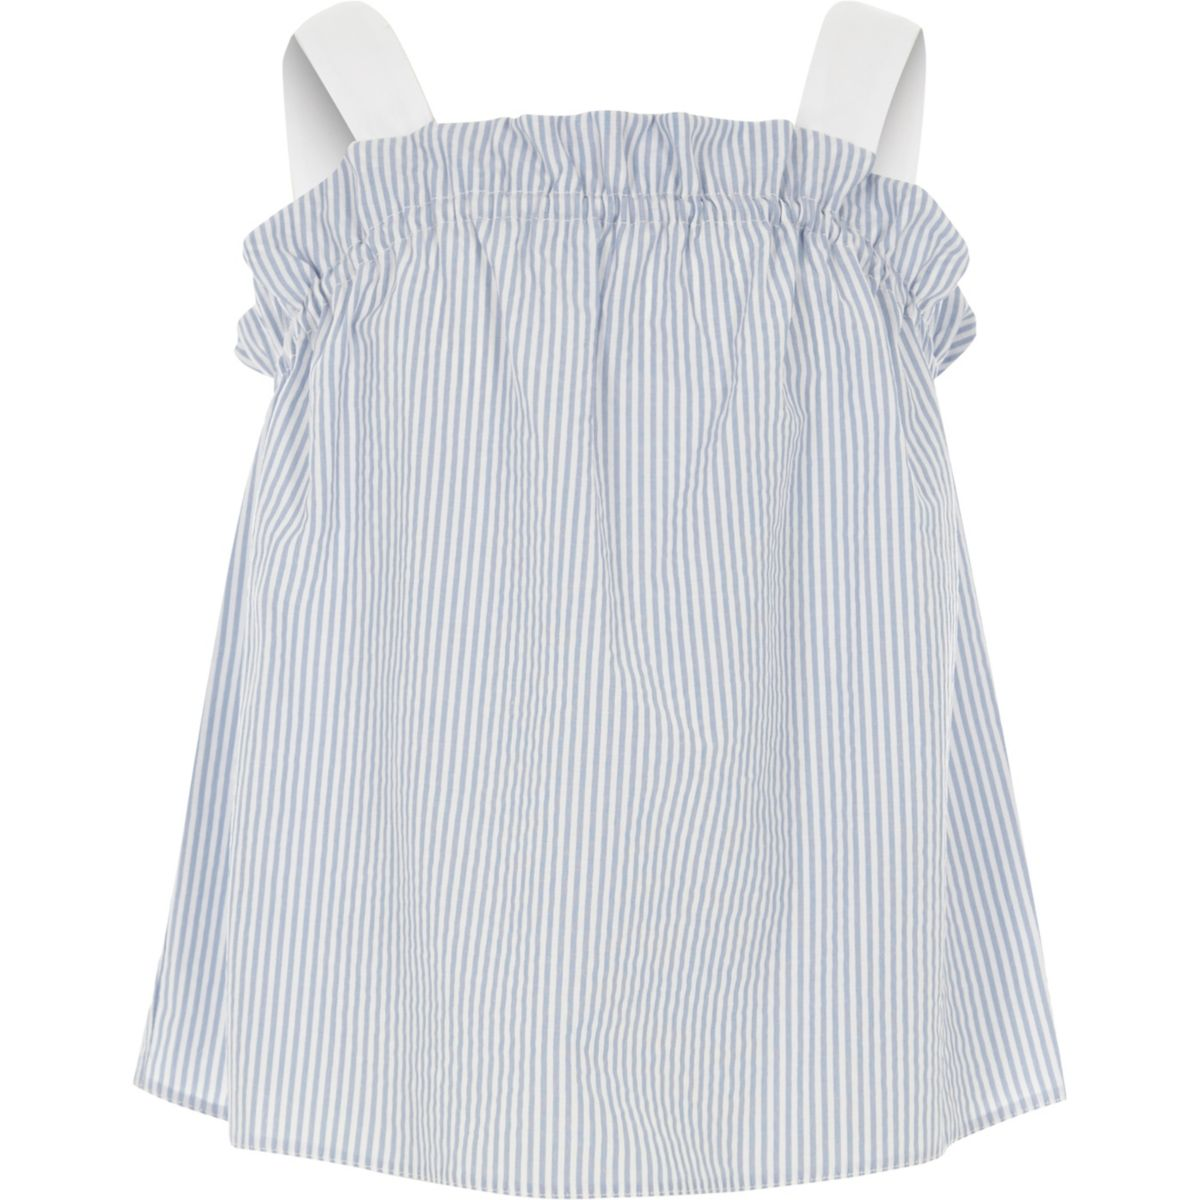 Girls Blue Stripe Frill Cami Top by River Island